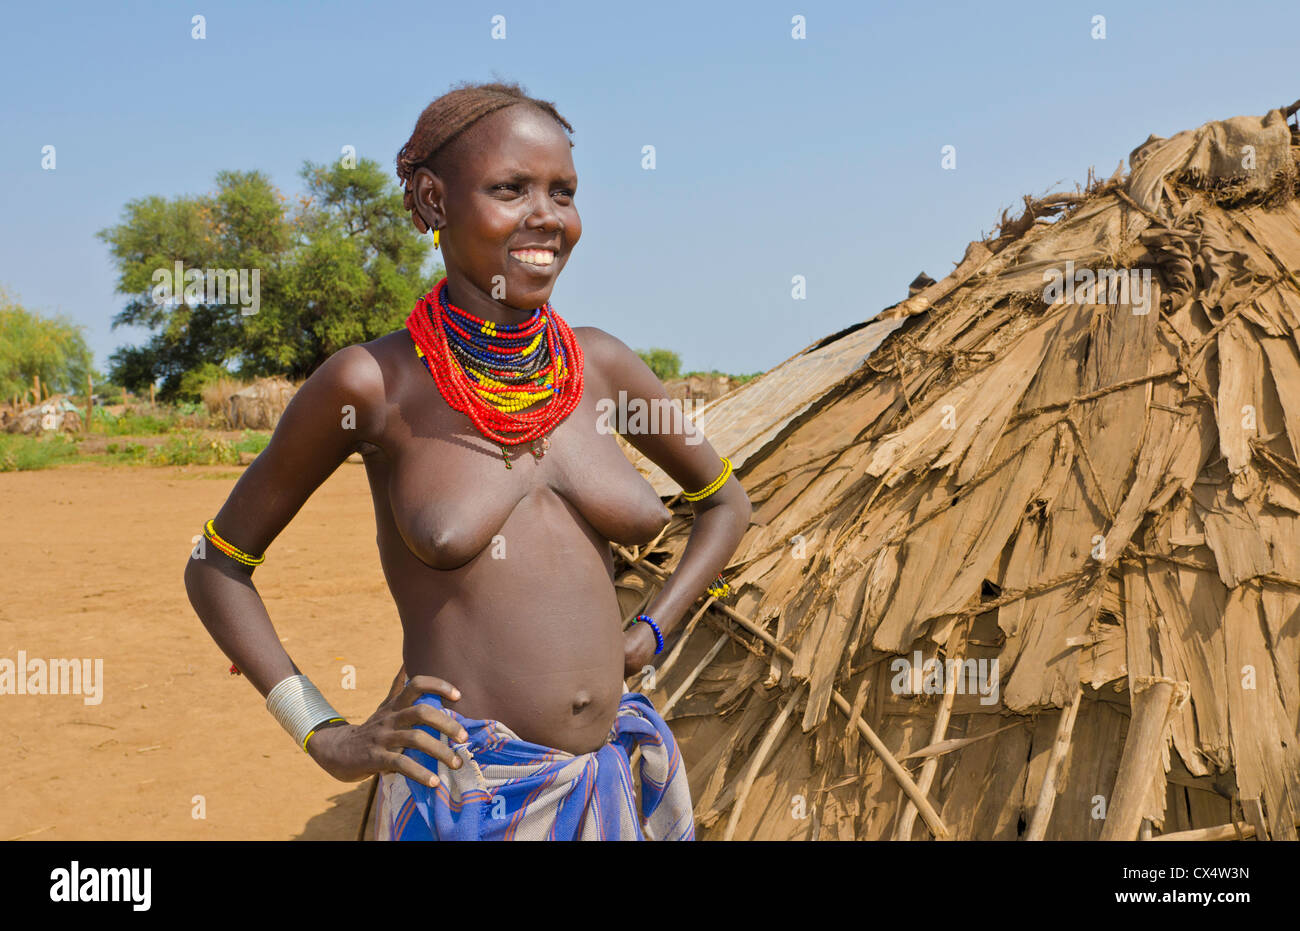 African naked tribe women, full frontal nudity